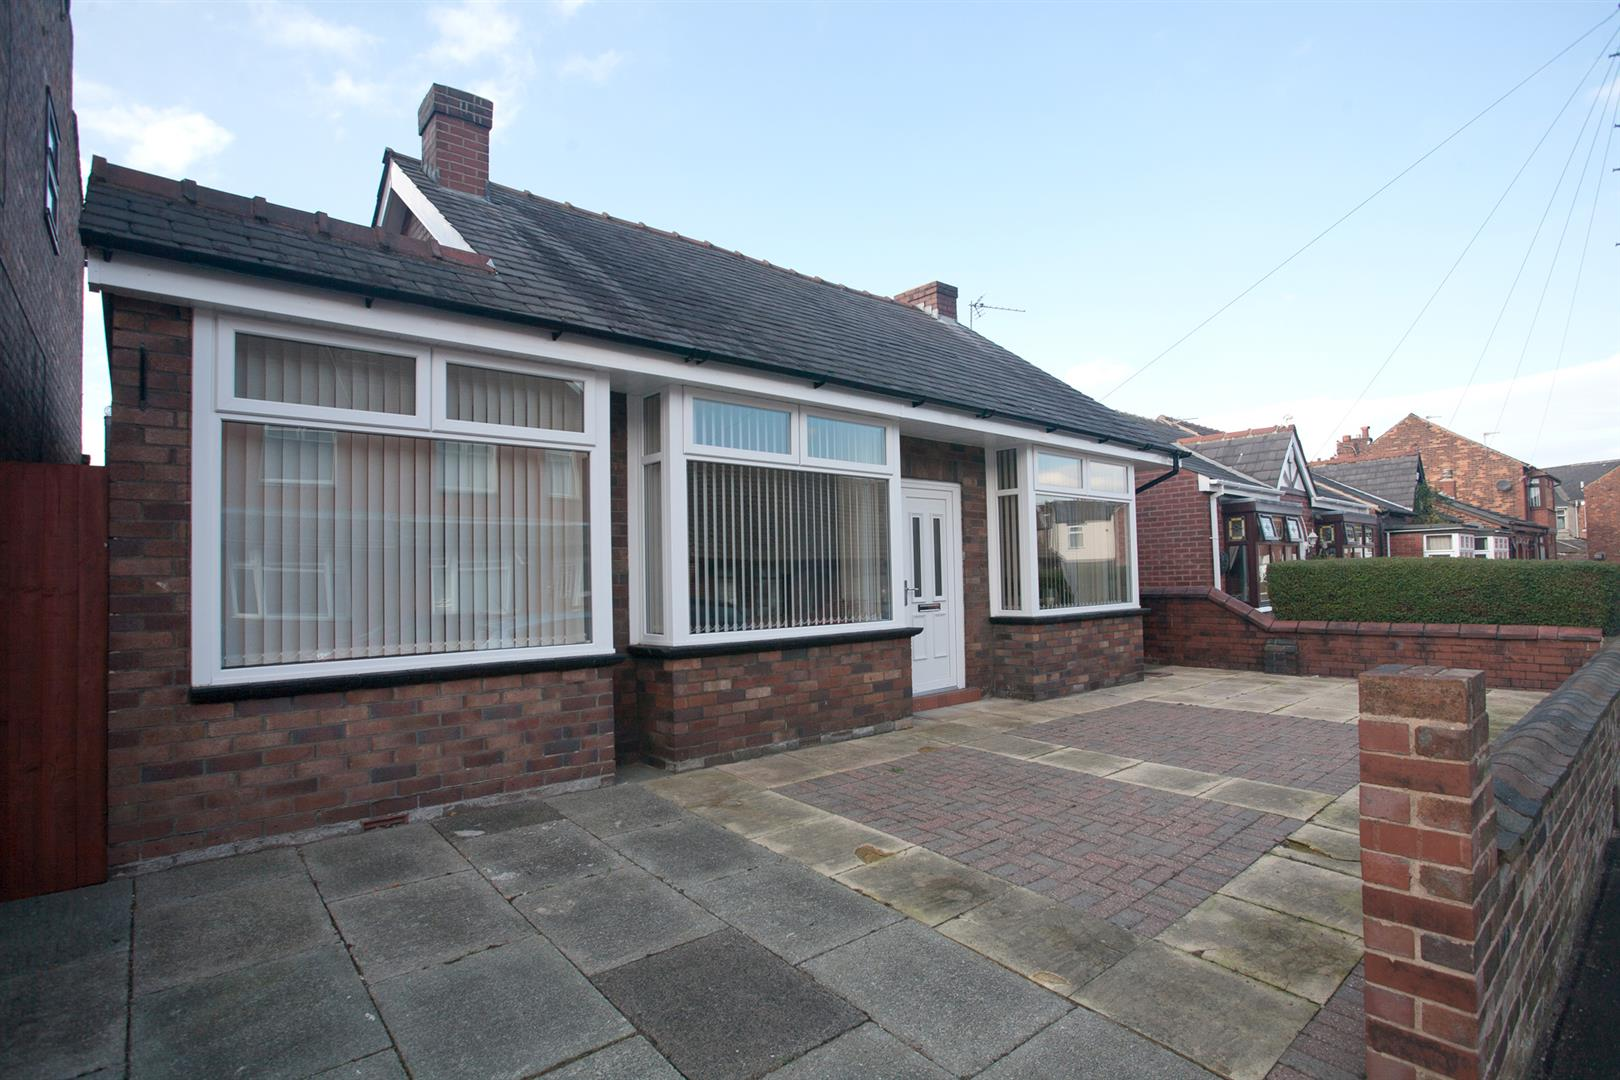 2 Bedrooms Detached Bungalow for sale in Banner Street, Ince, Wigan